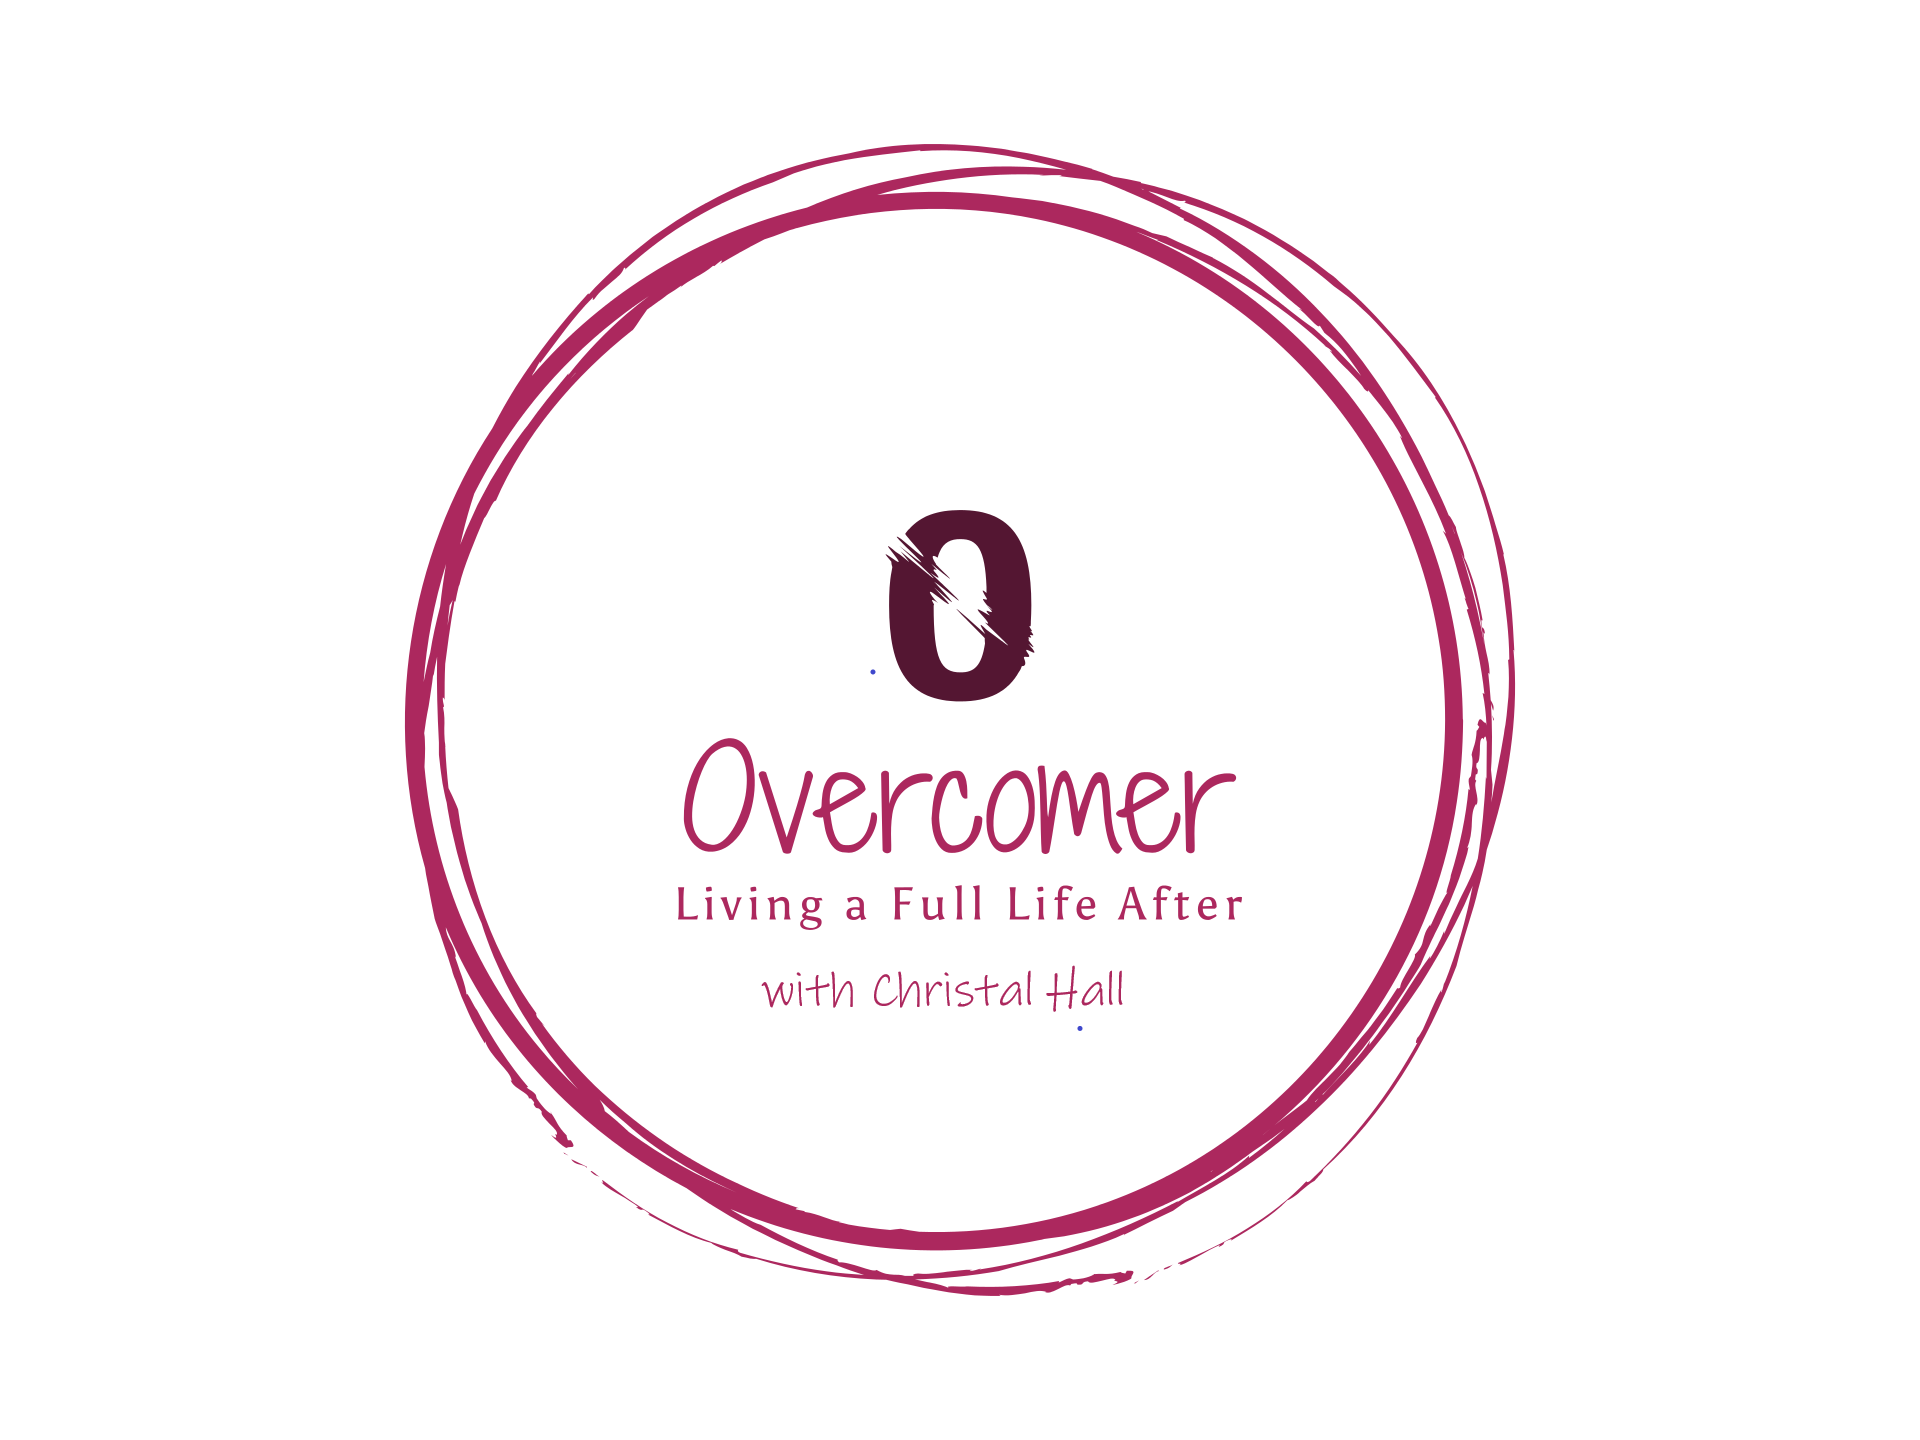 Overcomer: Living a Full Life After